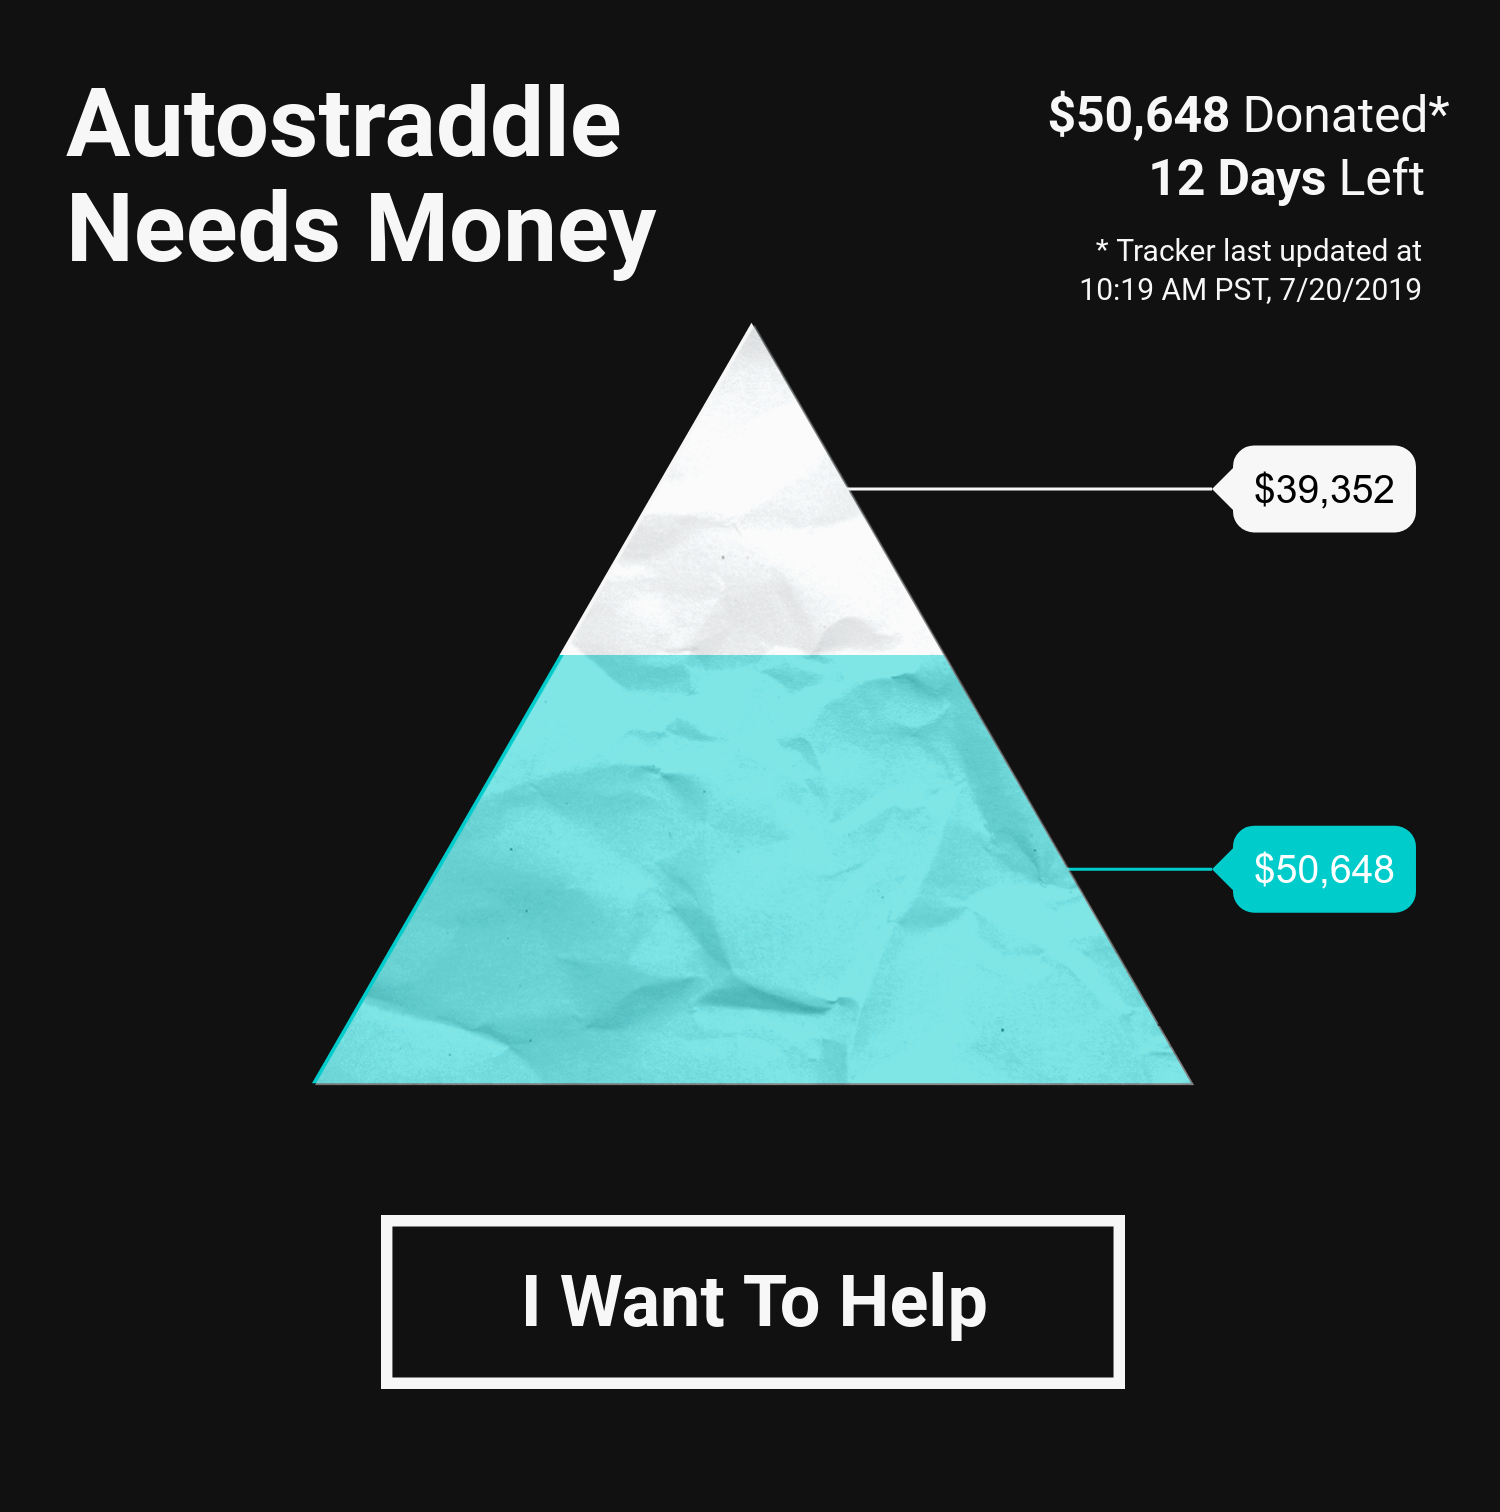 Autostraddle Needs Money / [visual] Fundraising Tracker / $50,648 Donated / Last Updated: 7.20 at 10:19am PST / [button] I Want To Help